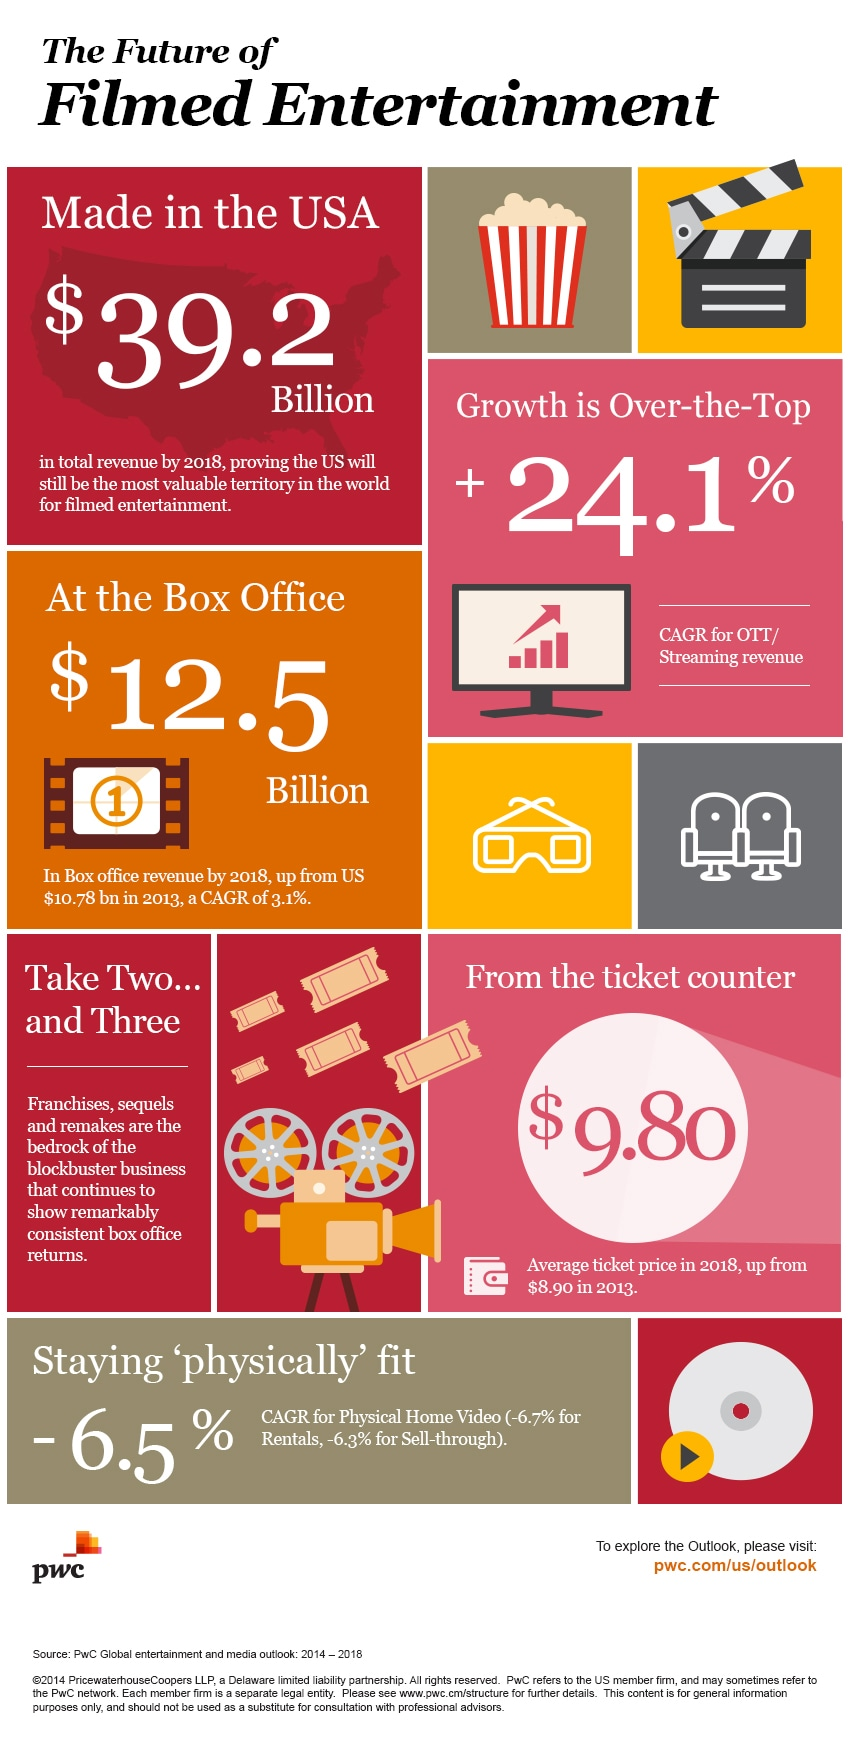 Global entertainment and media outlook: film